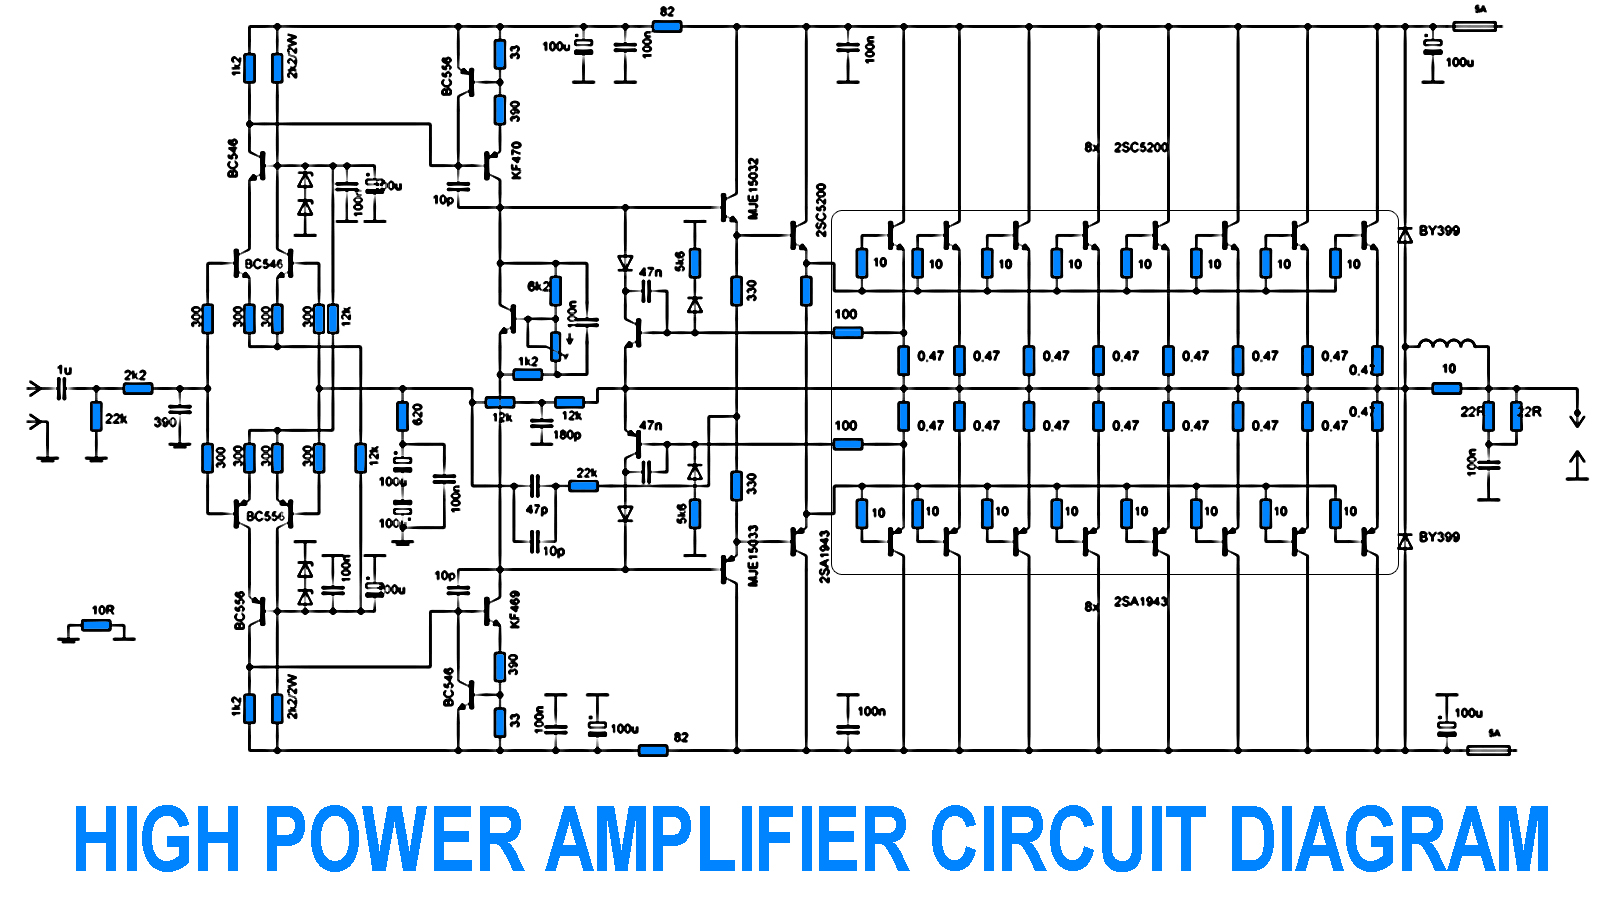 wiring schematic diagram 700w power amplifier with. Black Bedroom Furniture Sets. Home Design Ideas